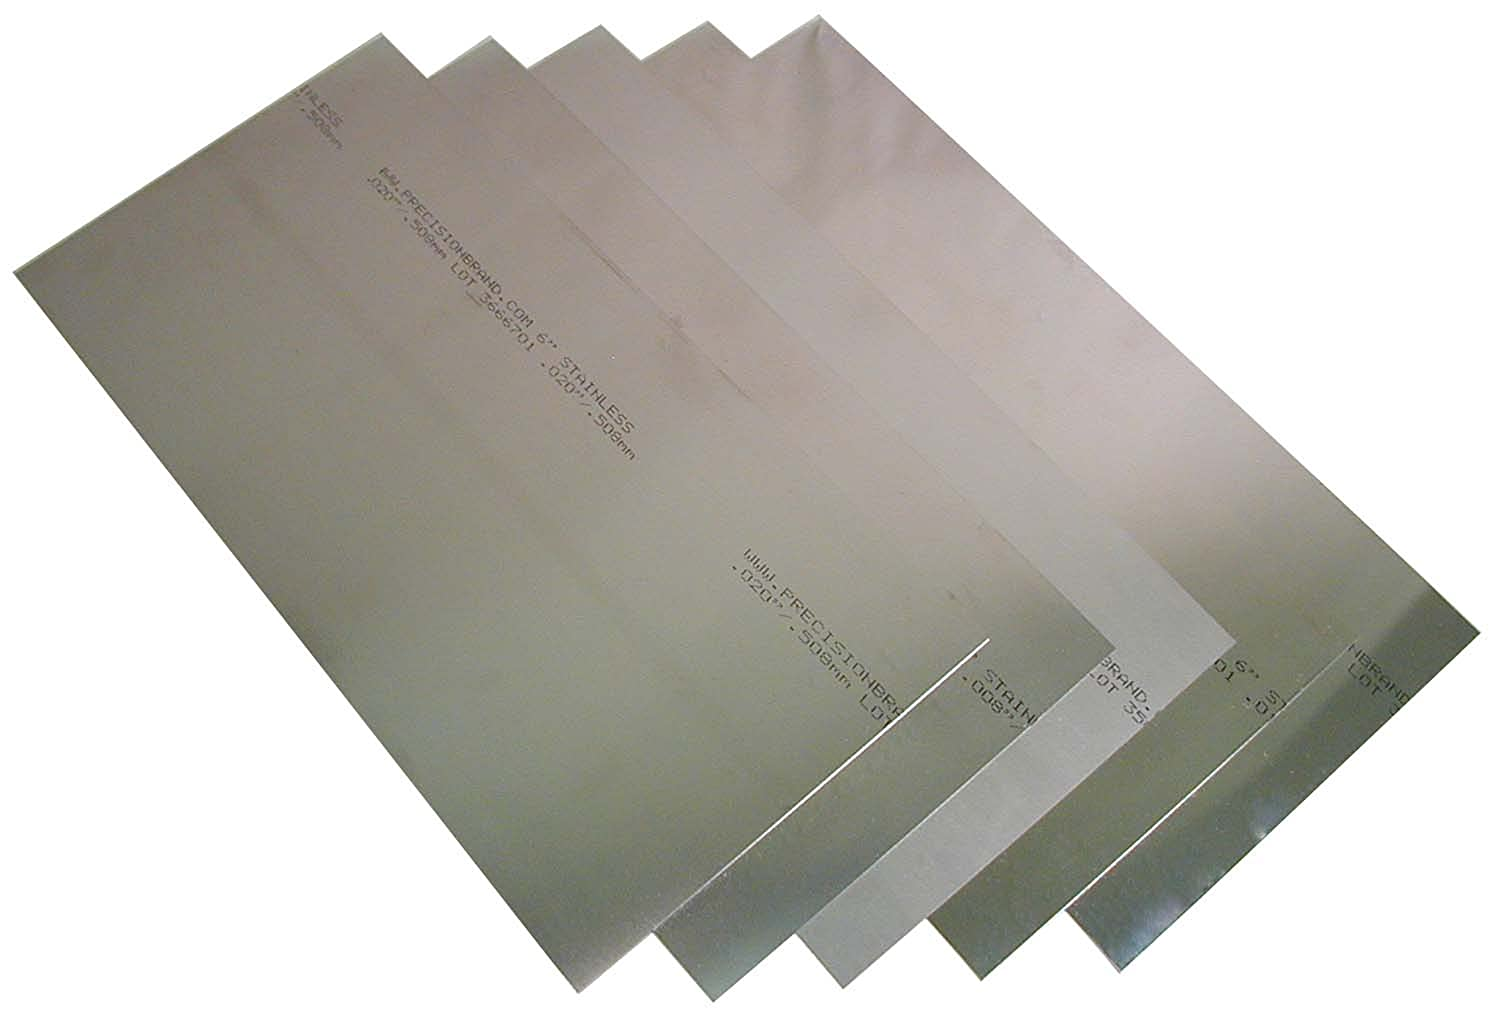 50 Length Hard Temper 300 Series Stainless Steel Shim Stock Finish Unpolished Mill 0.020 Thickness 12 Width ASTM A666